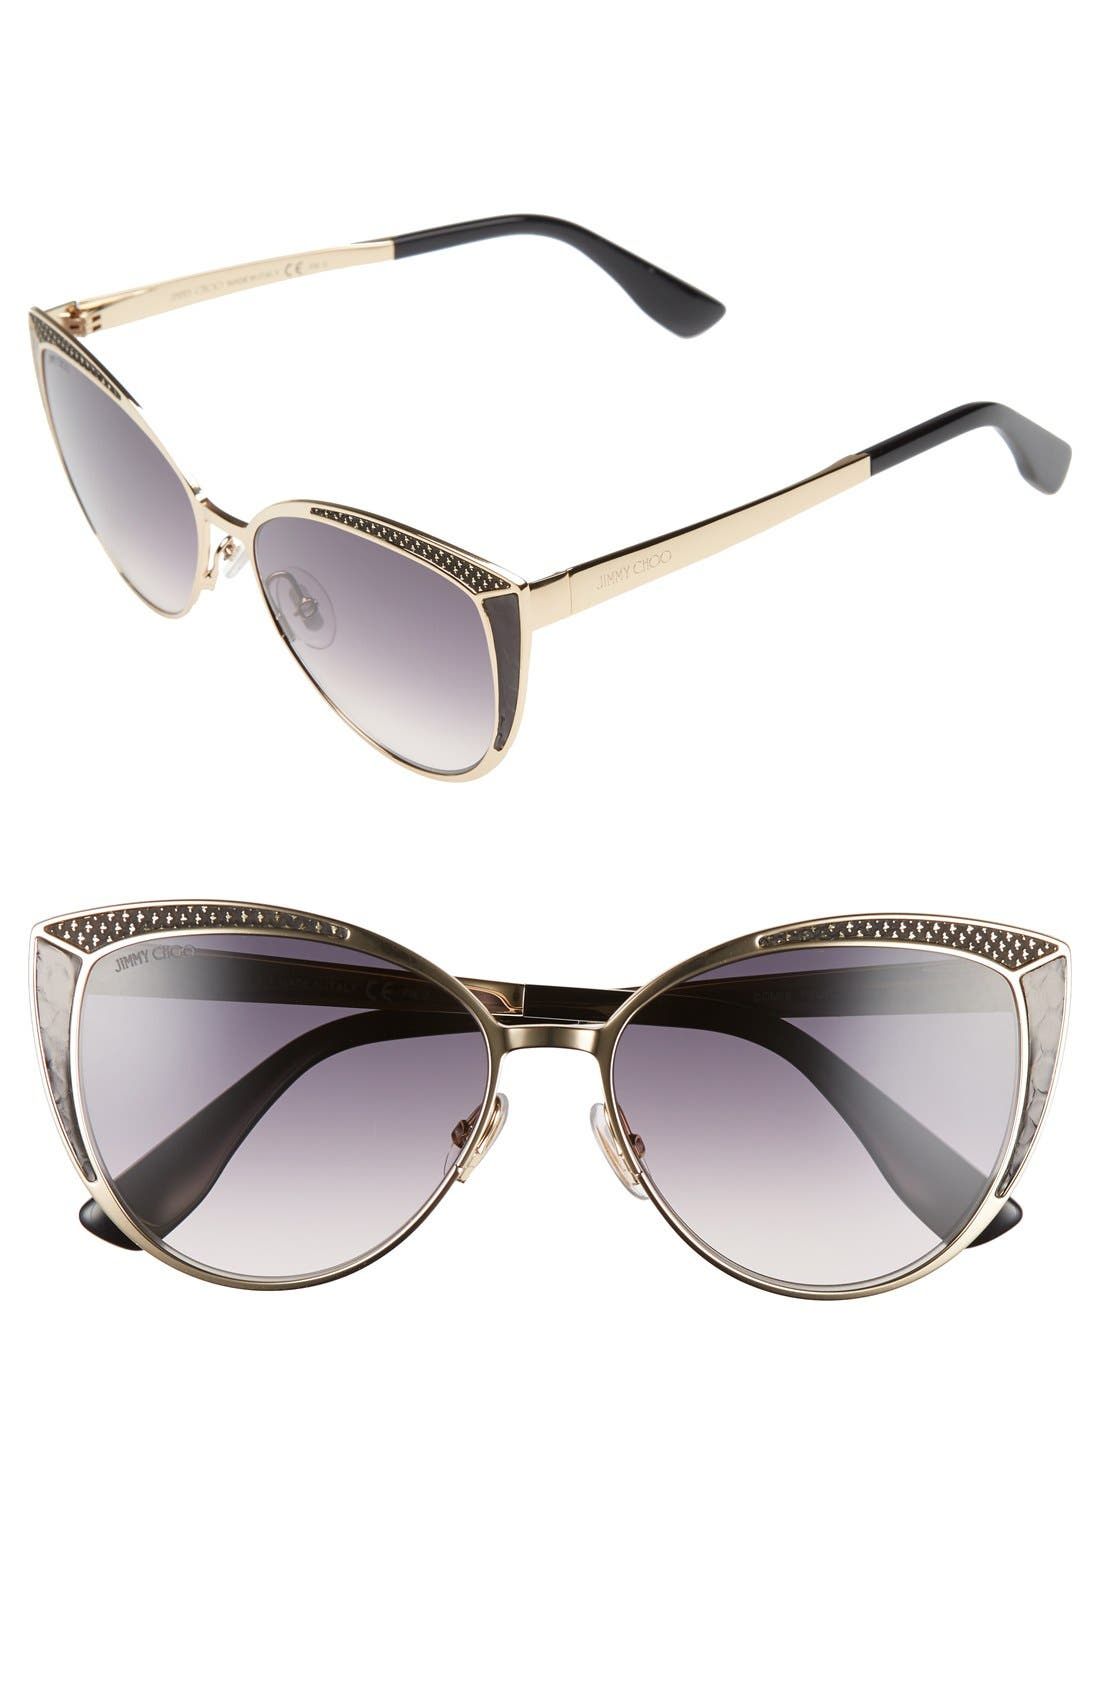 Alternate Image 1 Selected - Jimmy Choo 56mm Cat Eye Sunglasses